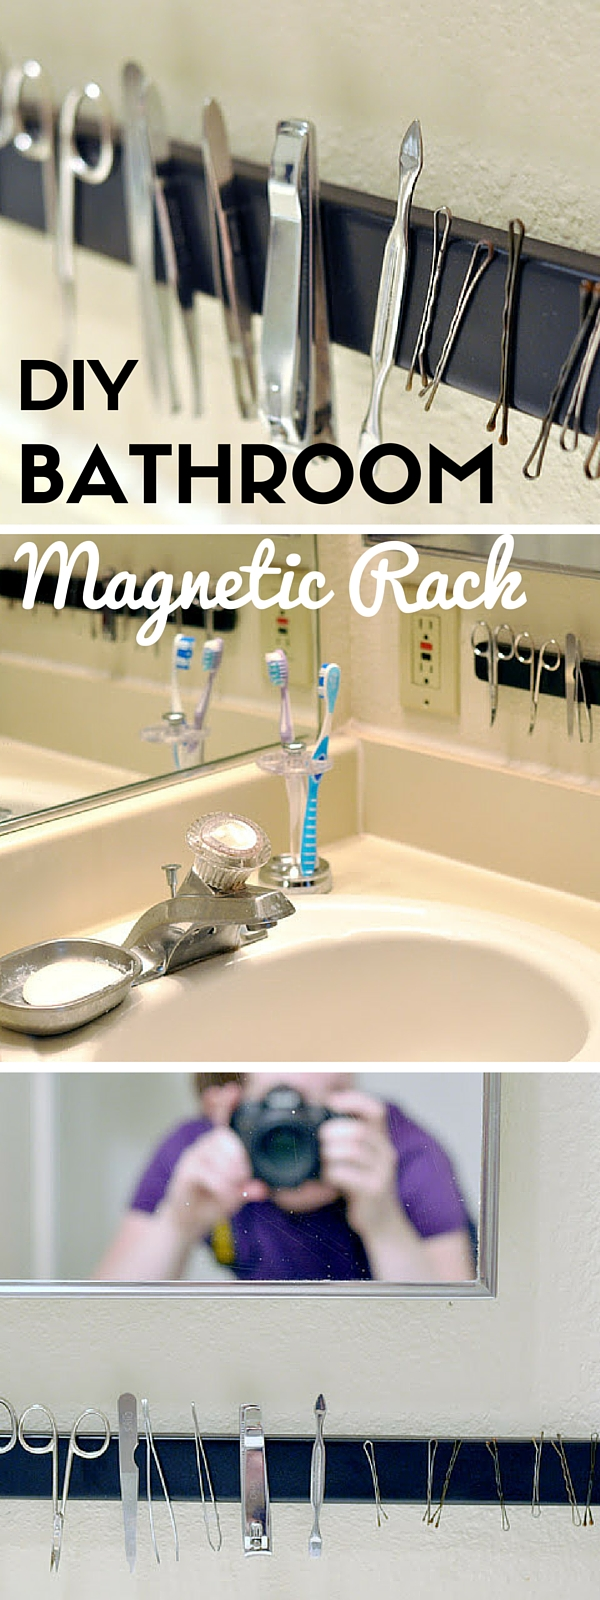 Check out the tutorial:  Magnetic Rack